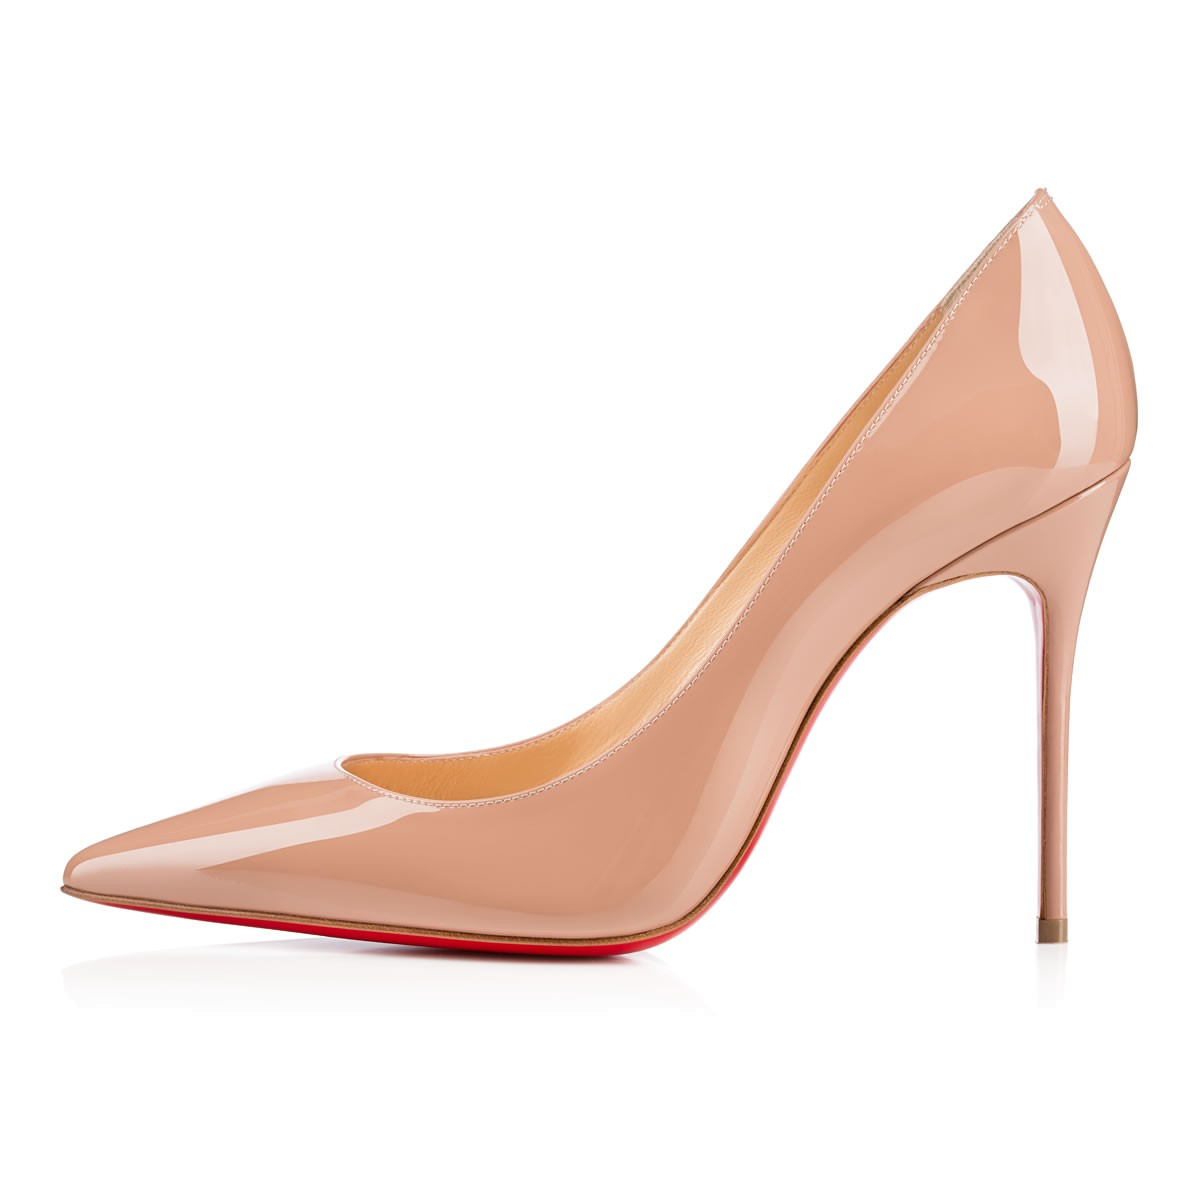 sports shoes cd6cd cf6df Kate 100 Nude Patent Leather - Women Shoes - Christian Louboutin